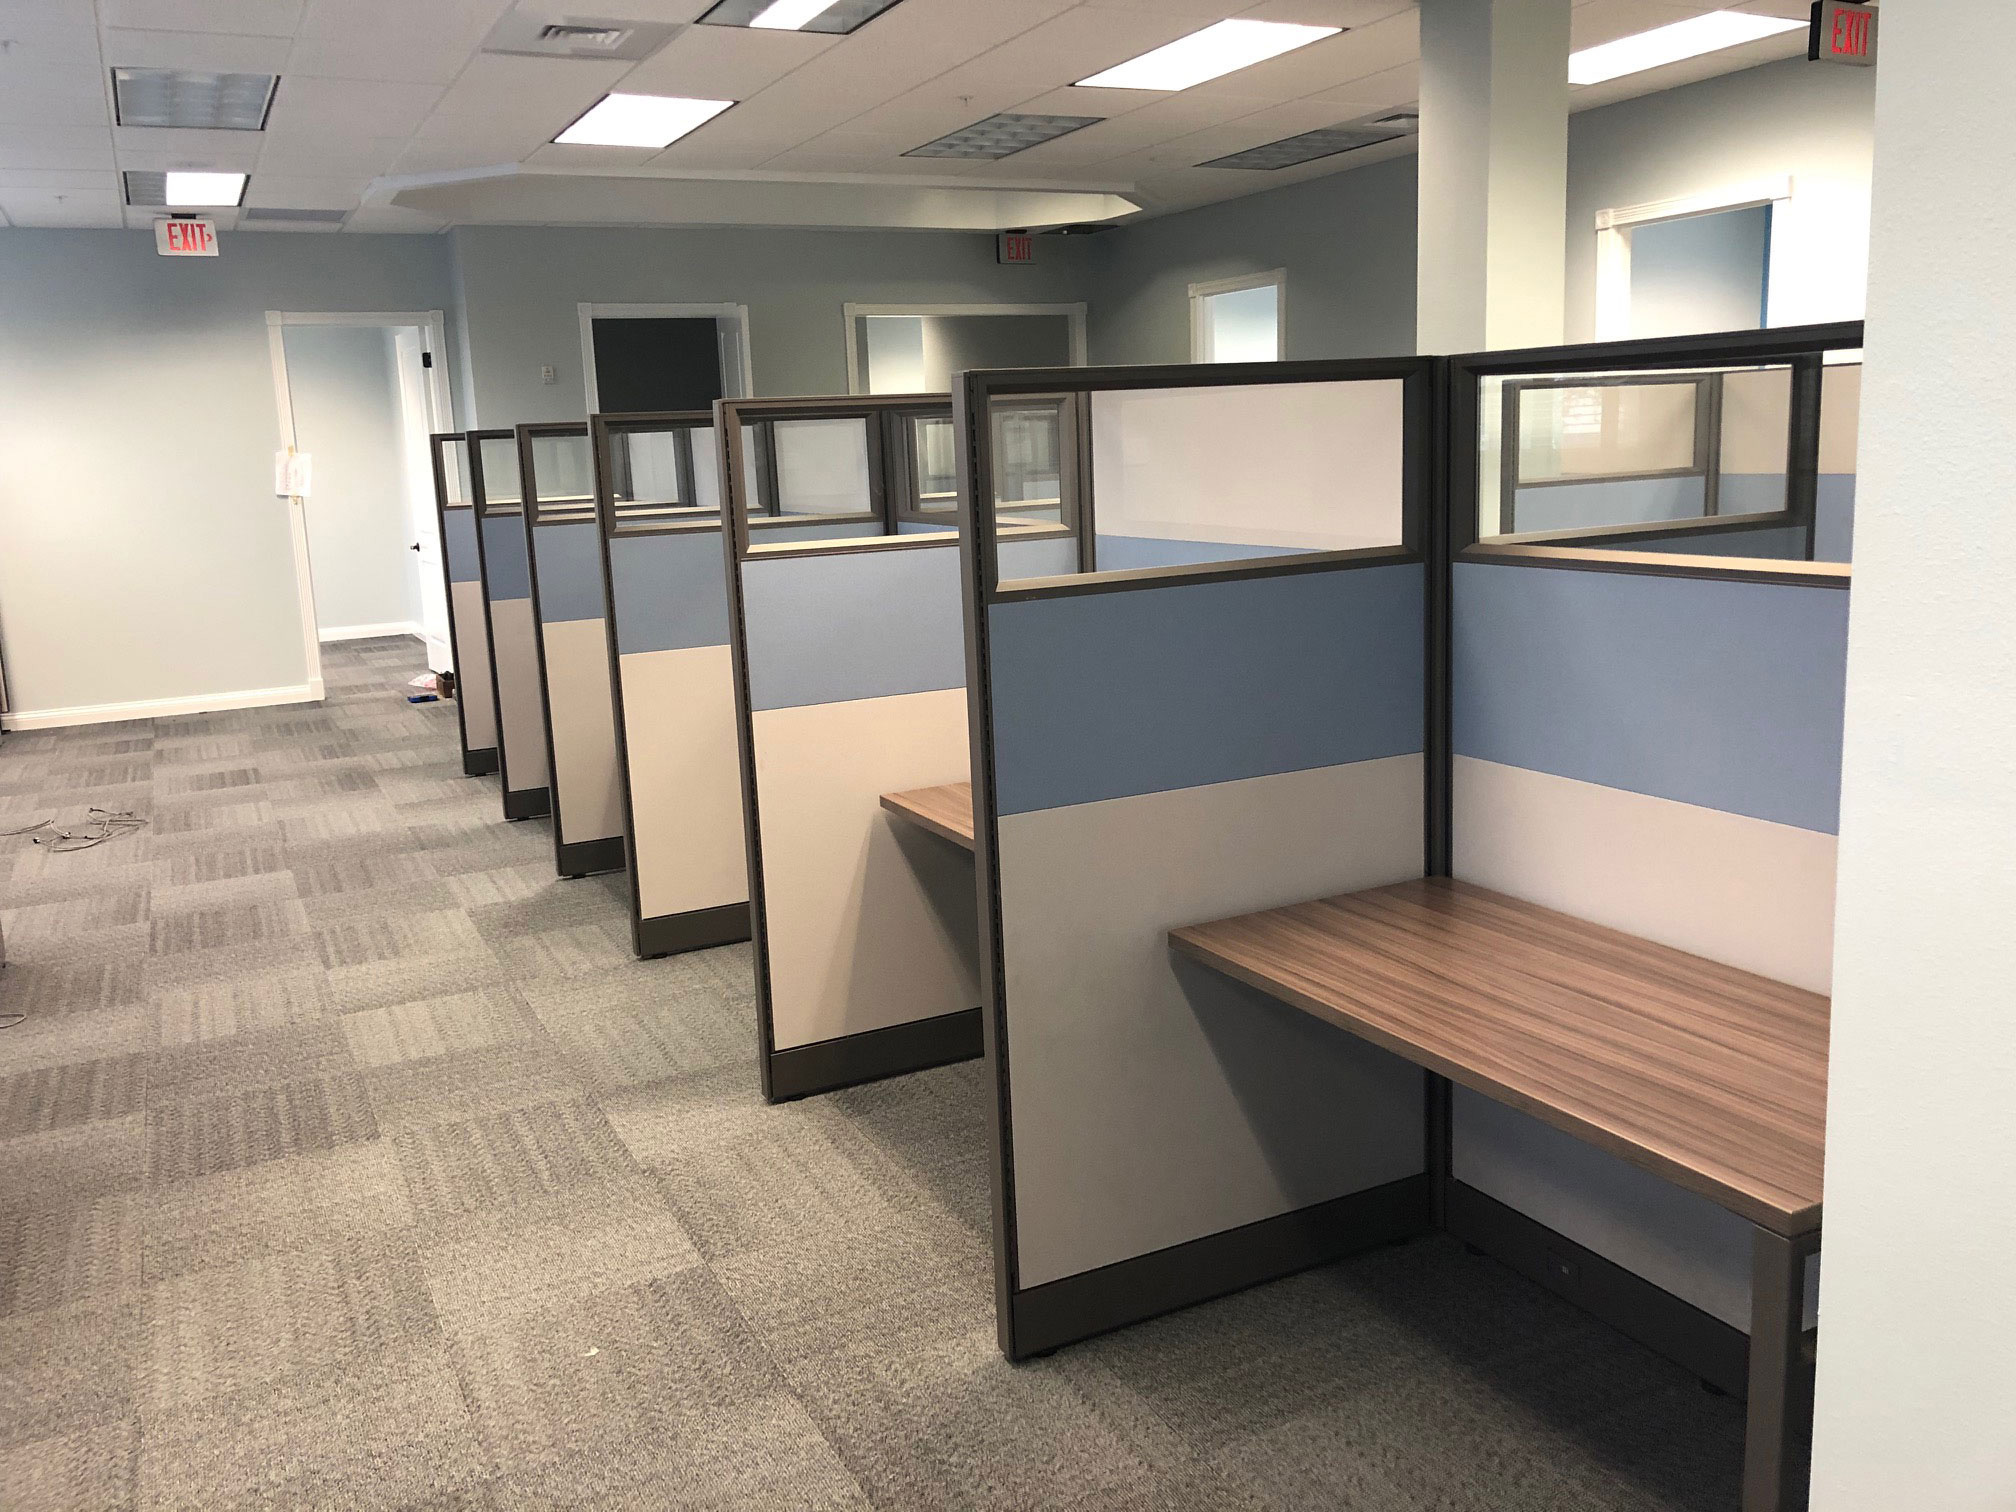 office-cubicles-for-sale-in-key-west-florida.jpg